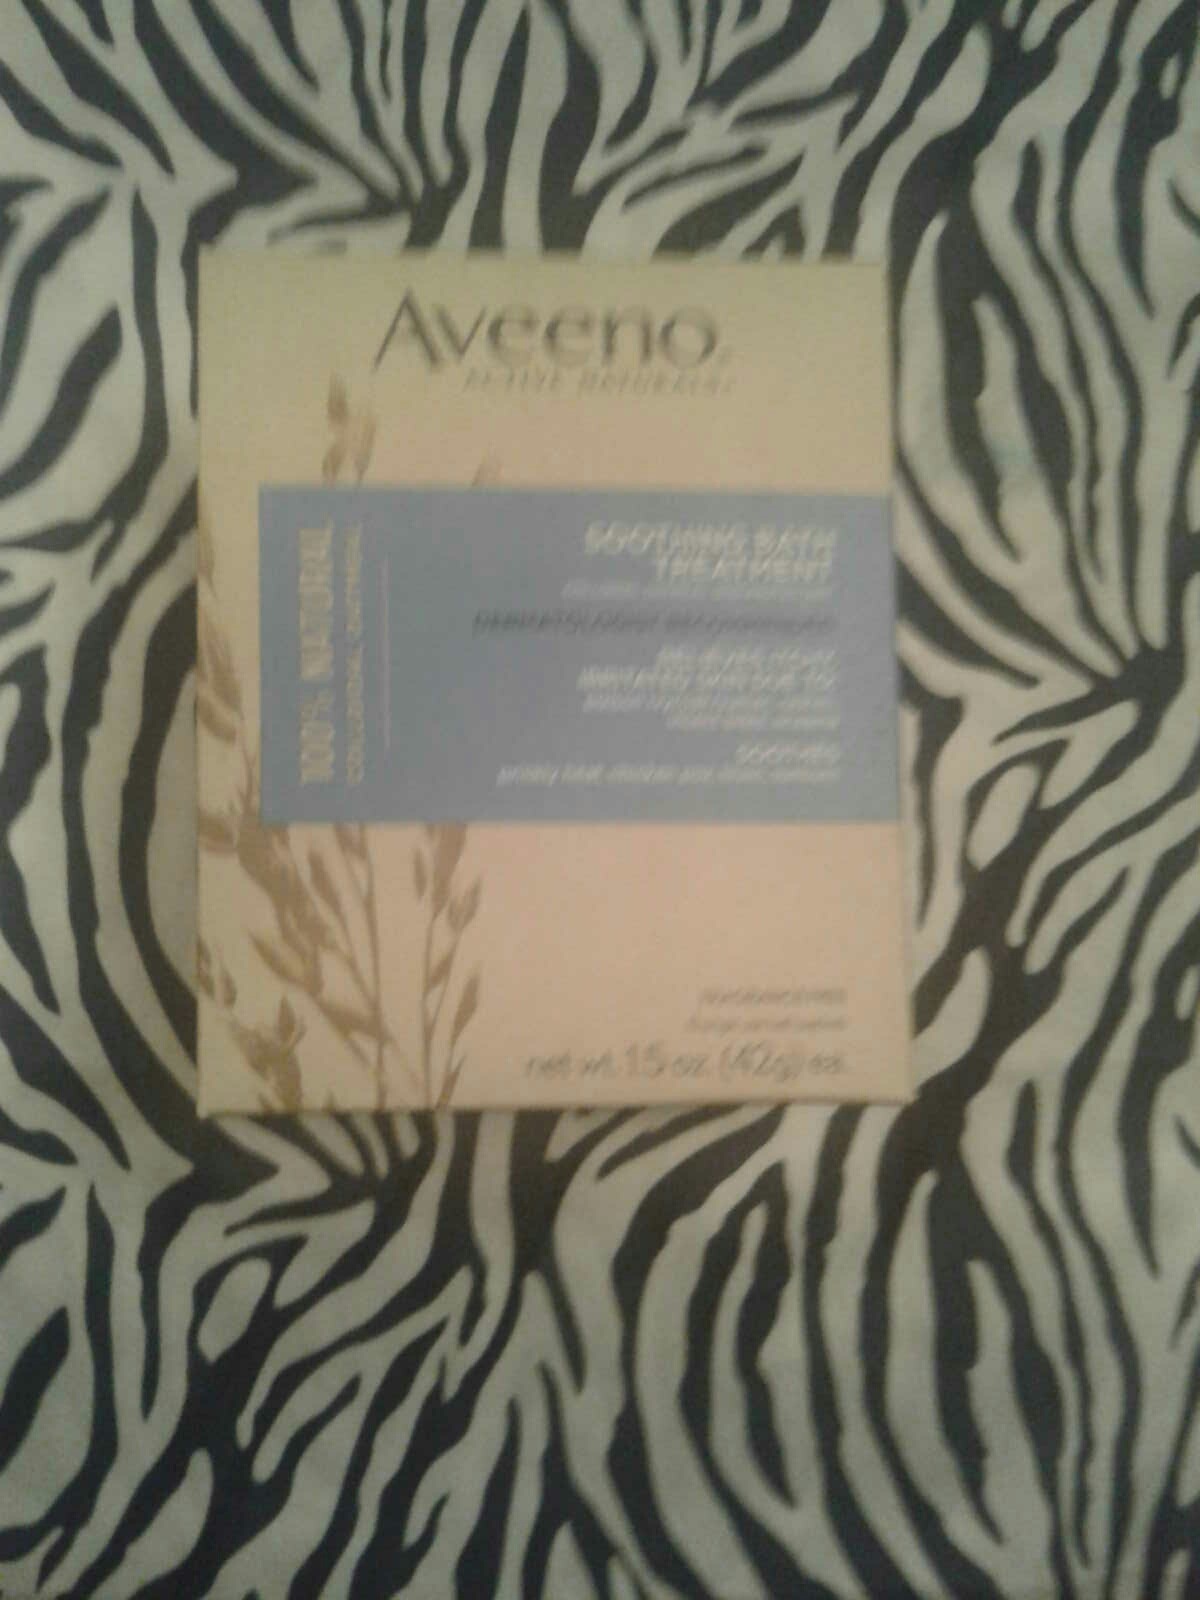 Aveeno Soothing Bath Treatments Colloidal Oatmeal Soothes Itchy, Irritated Skin; 8 Single Use Packets New, Factory Sealed ($8.29 Retail) $4